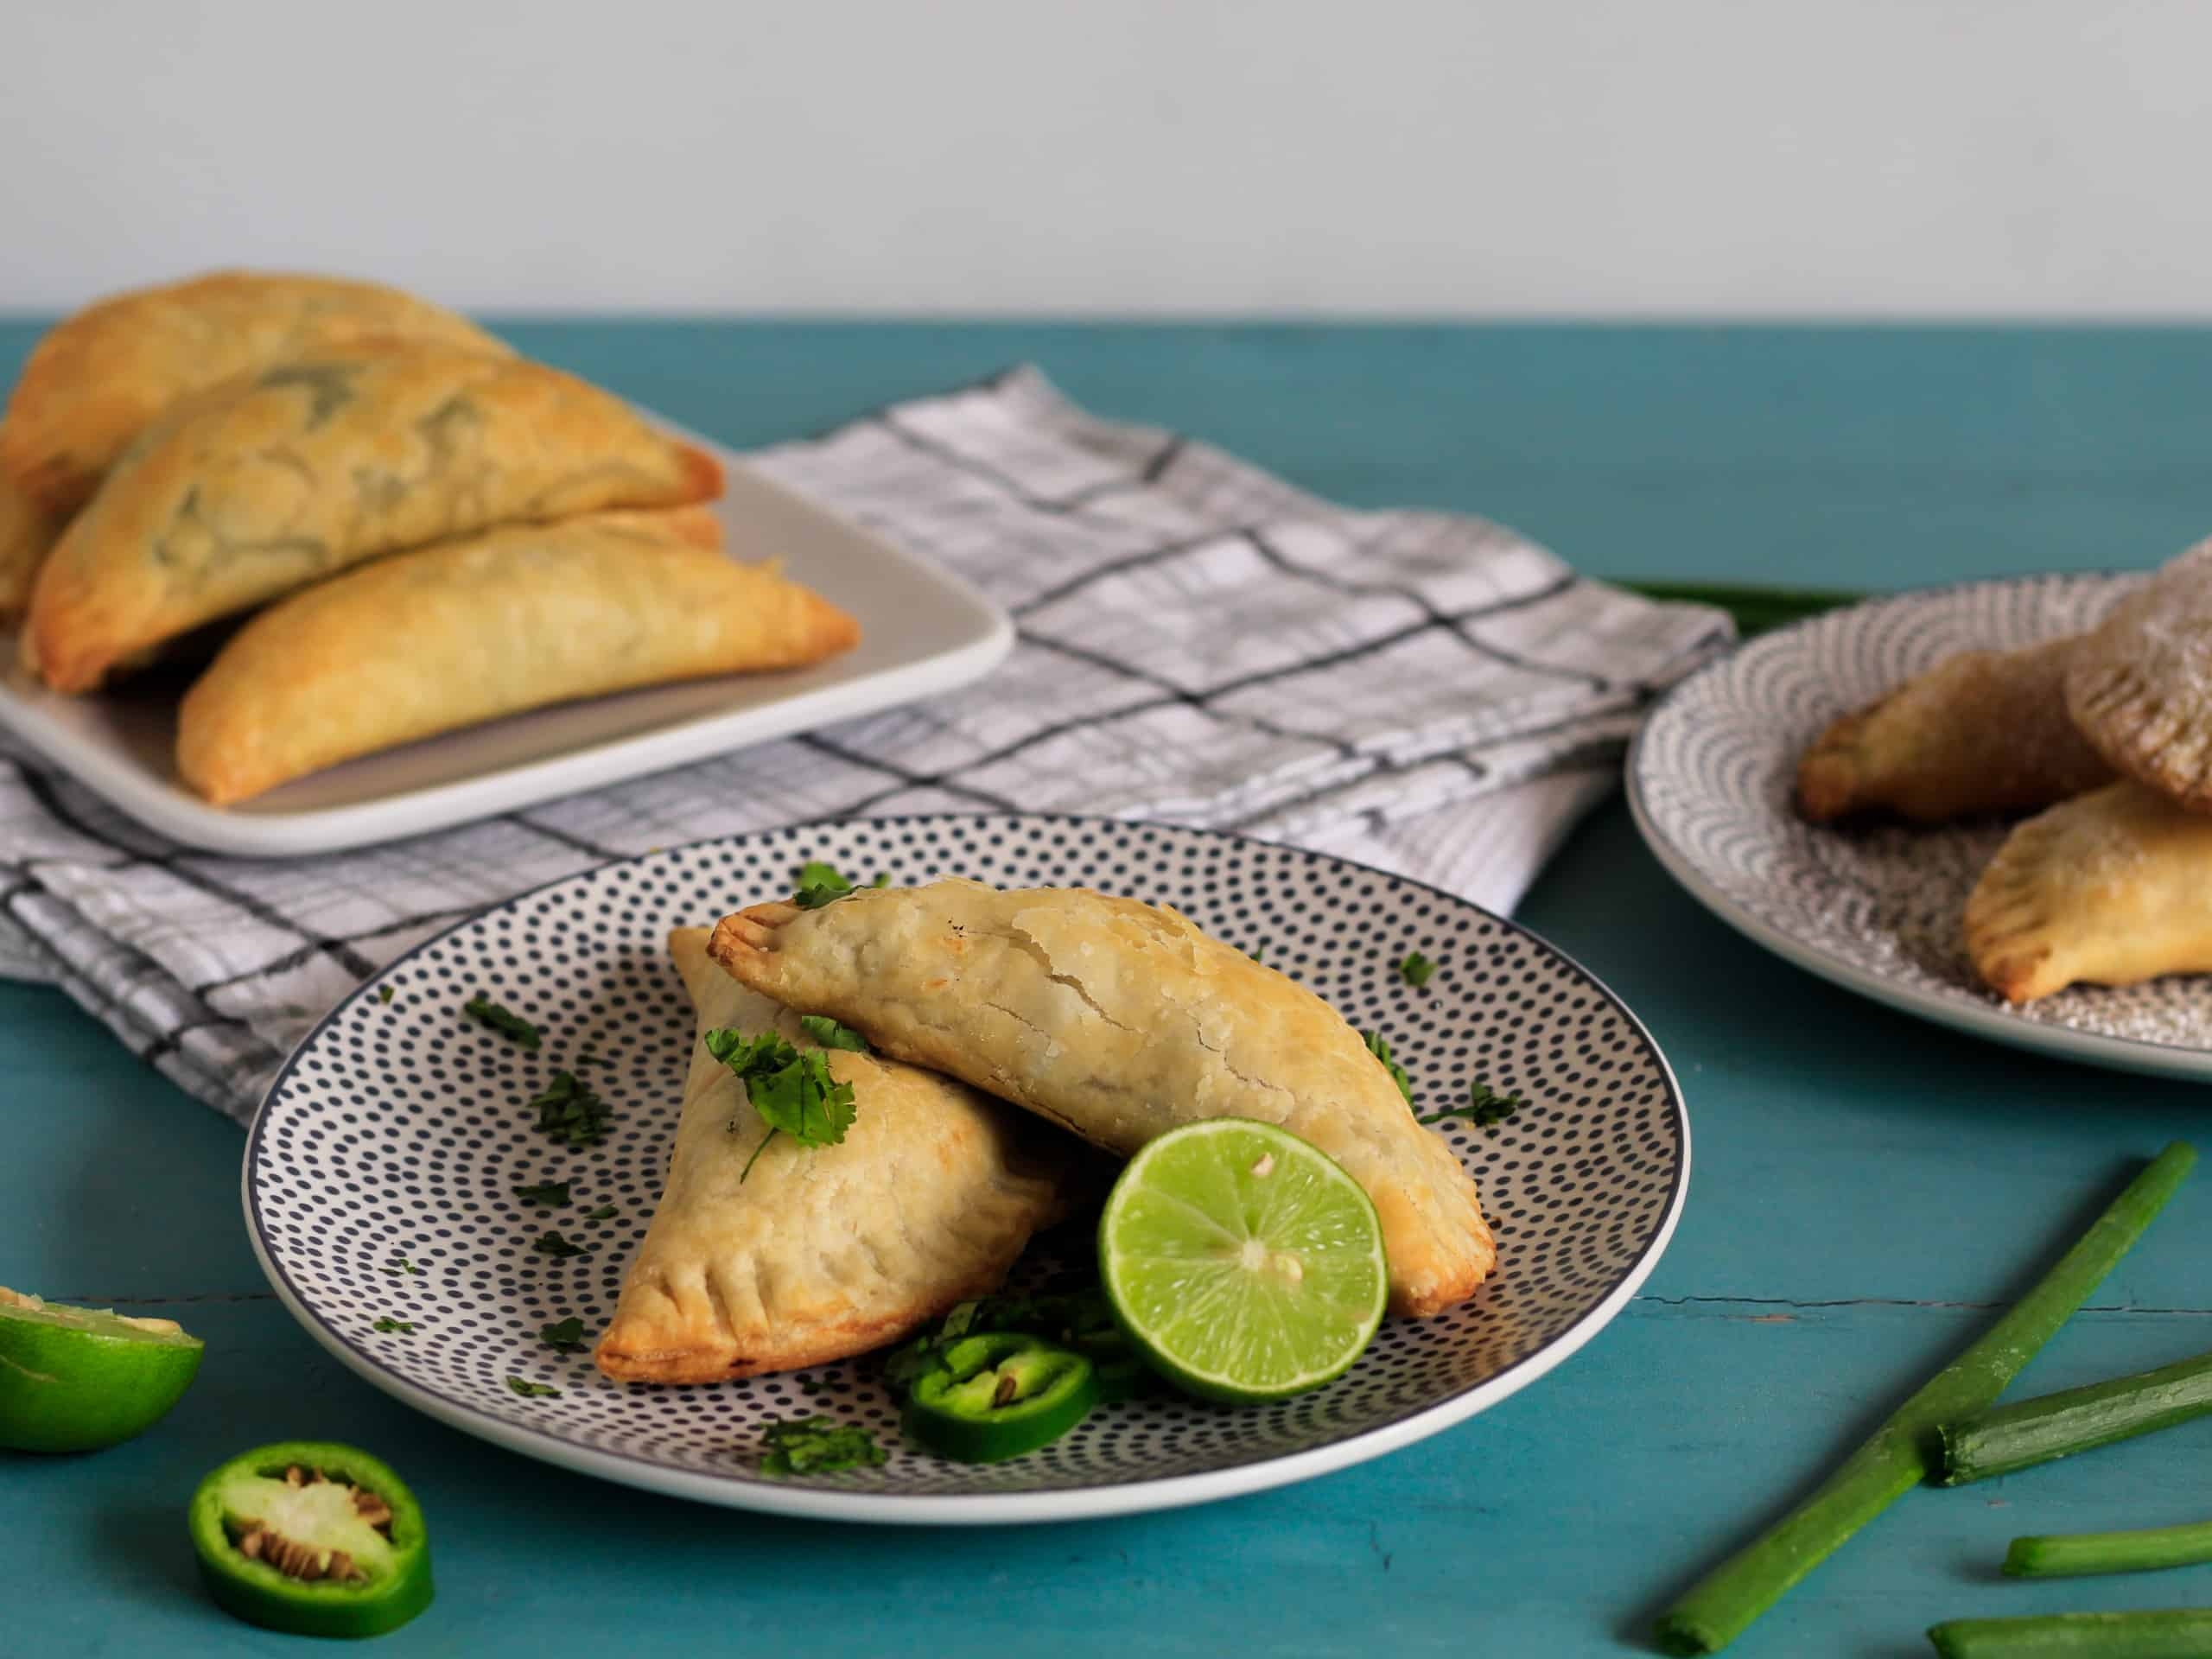 Plate with two cooked empanadas.